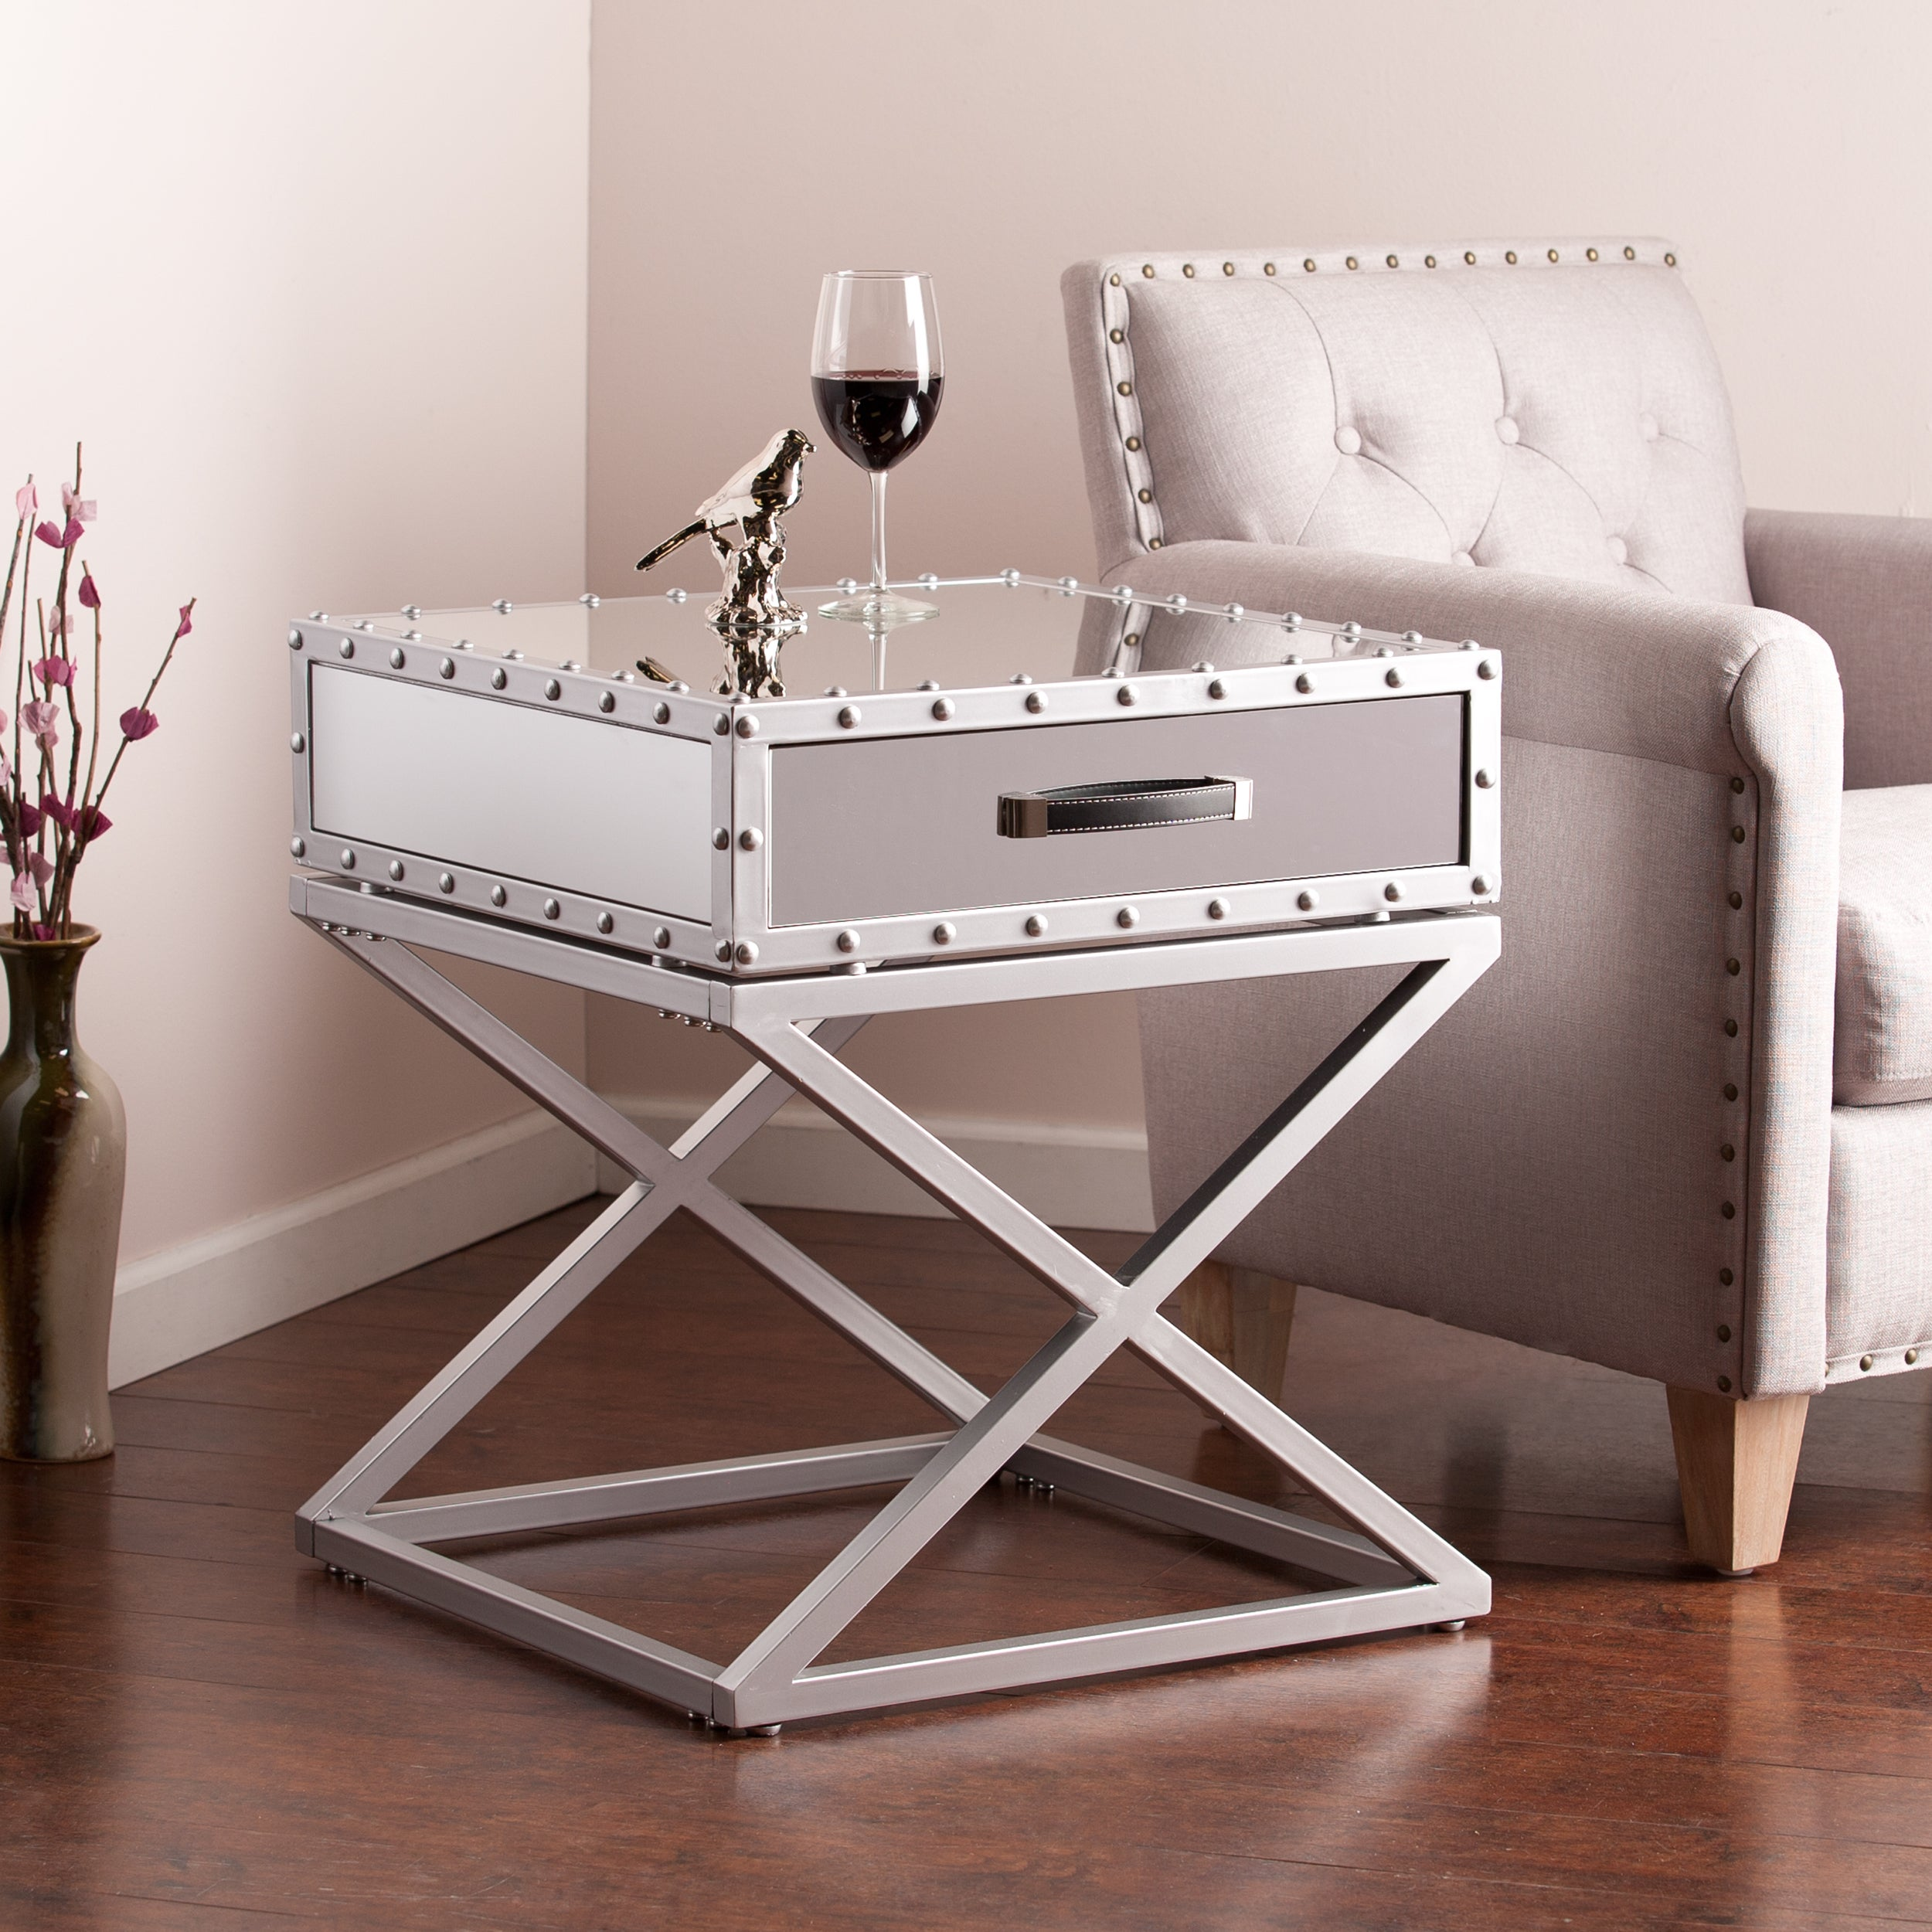 incredible Mirrored Accent Table With Drawer Part - 8: Harper Blvd Carollton Glam Mirrored Accent Table